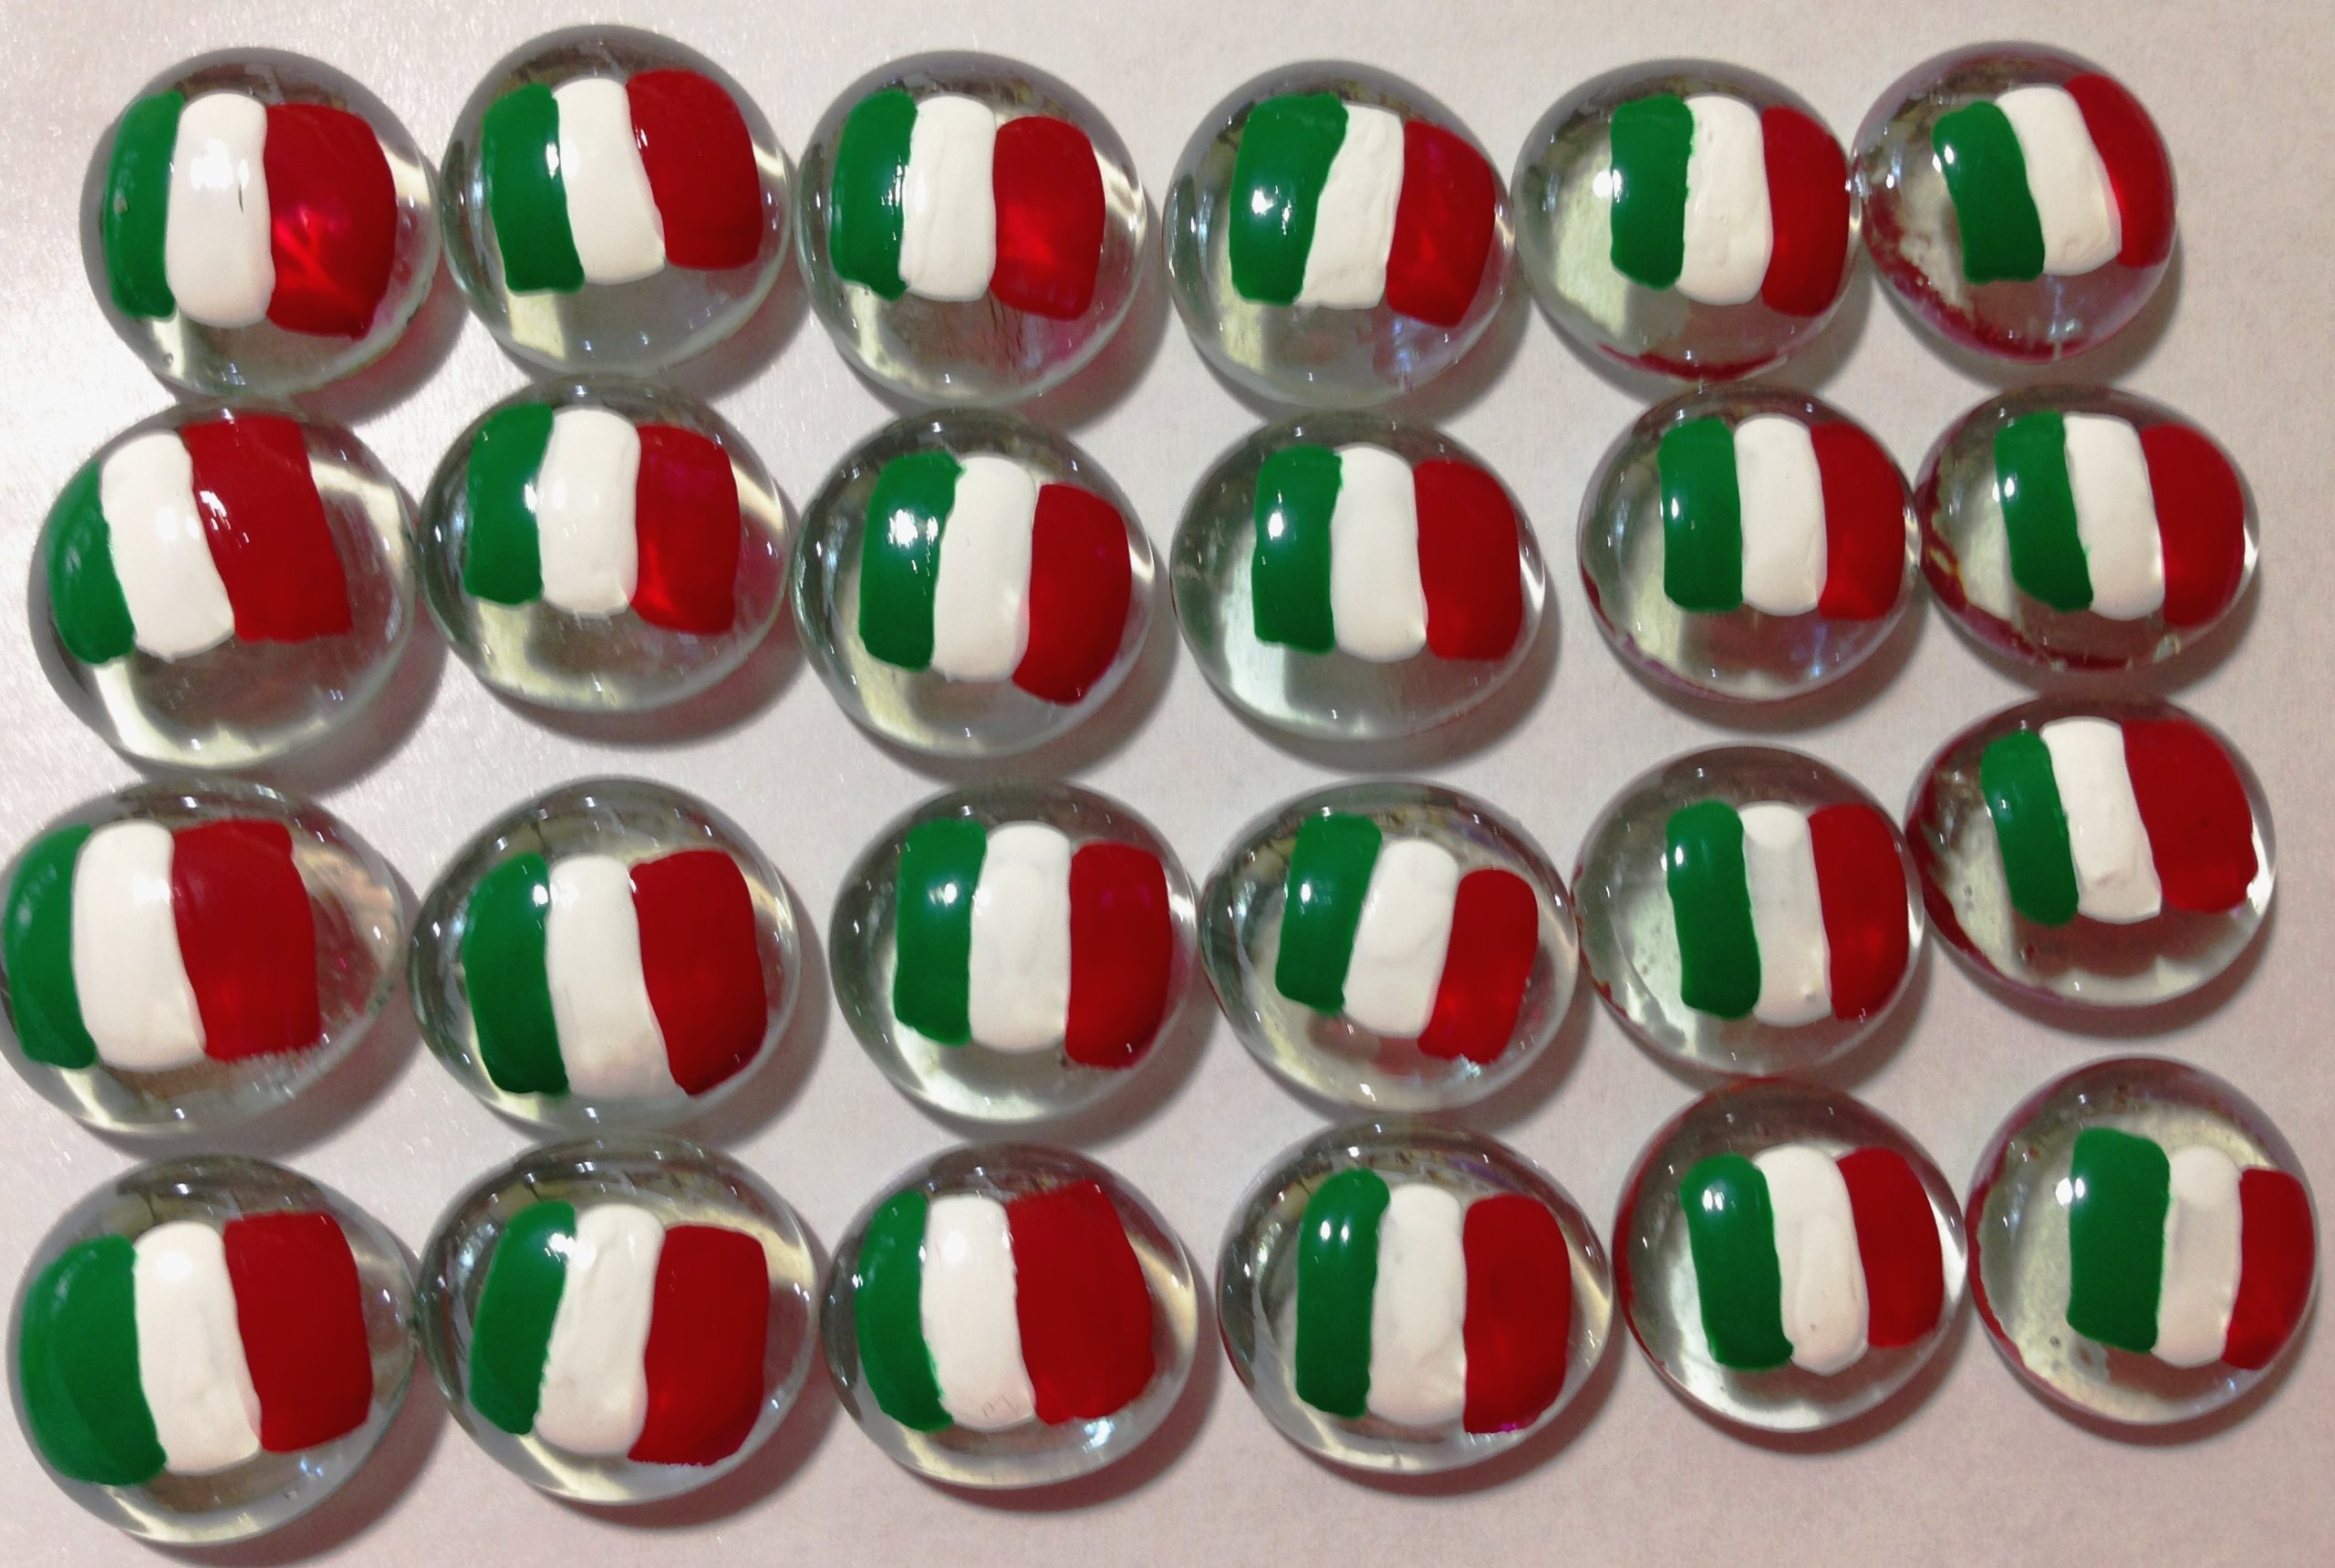 ITALIAN FLAG - Set of 24 Hand Painted Glass Gems; Party Supplies, Party Favor, Decoration, Token, Memoir, etc.let your imagination run wild!, Crafts etc, Italian Flag